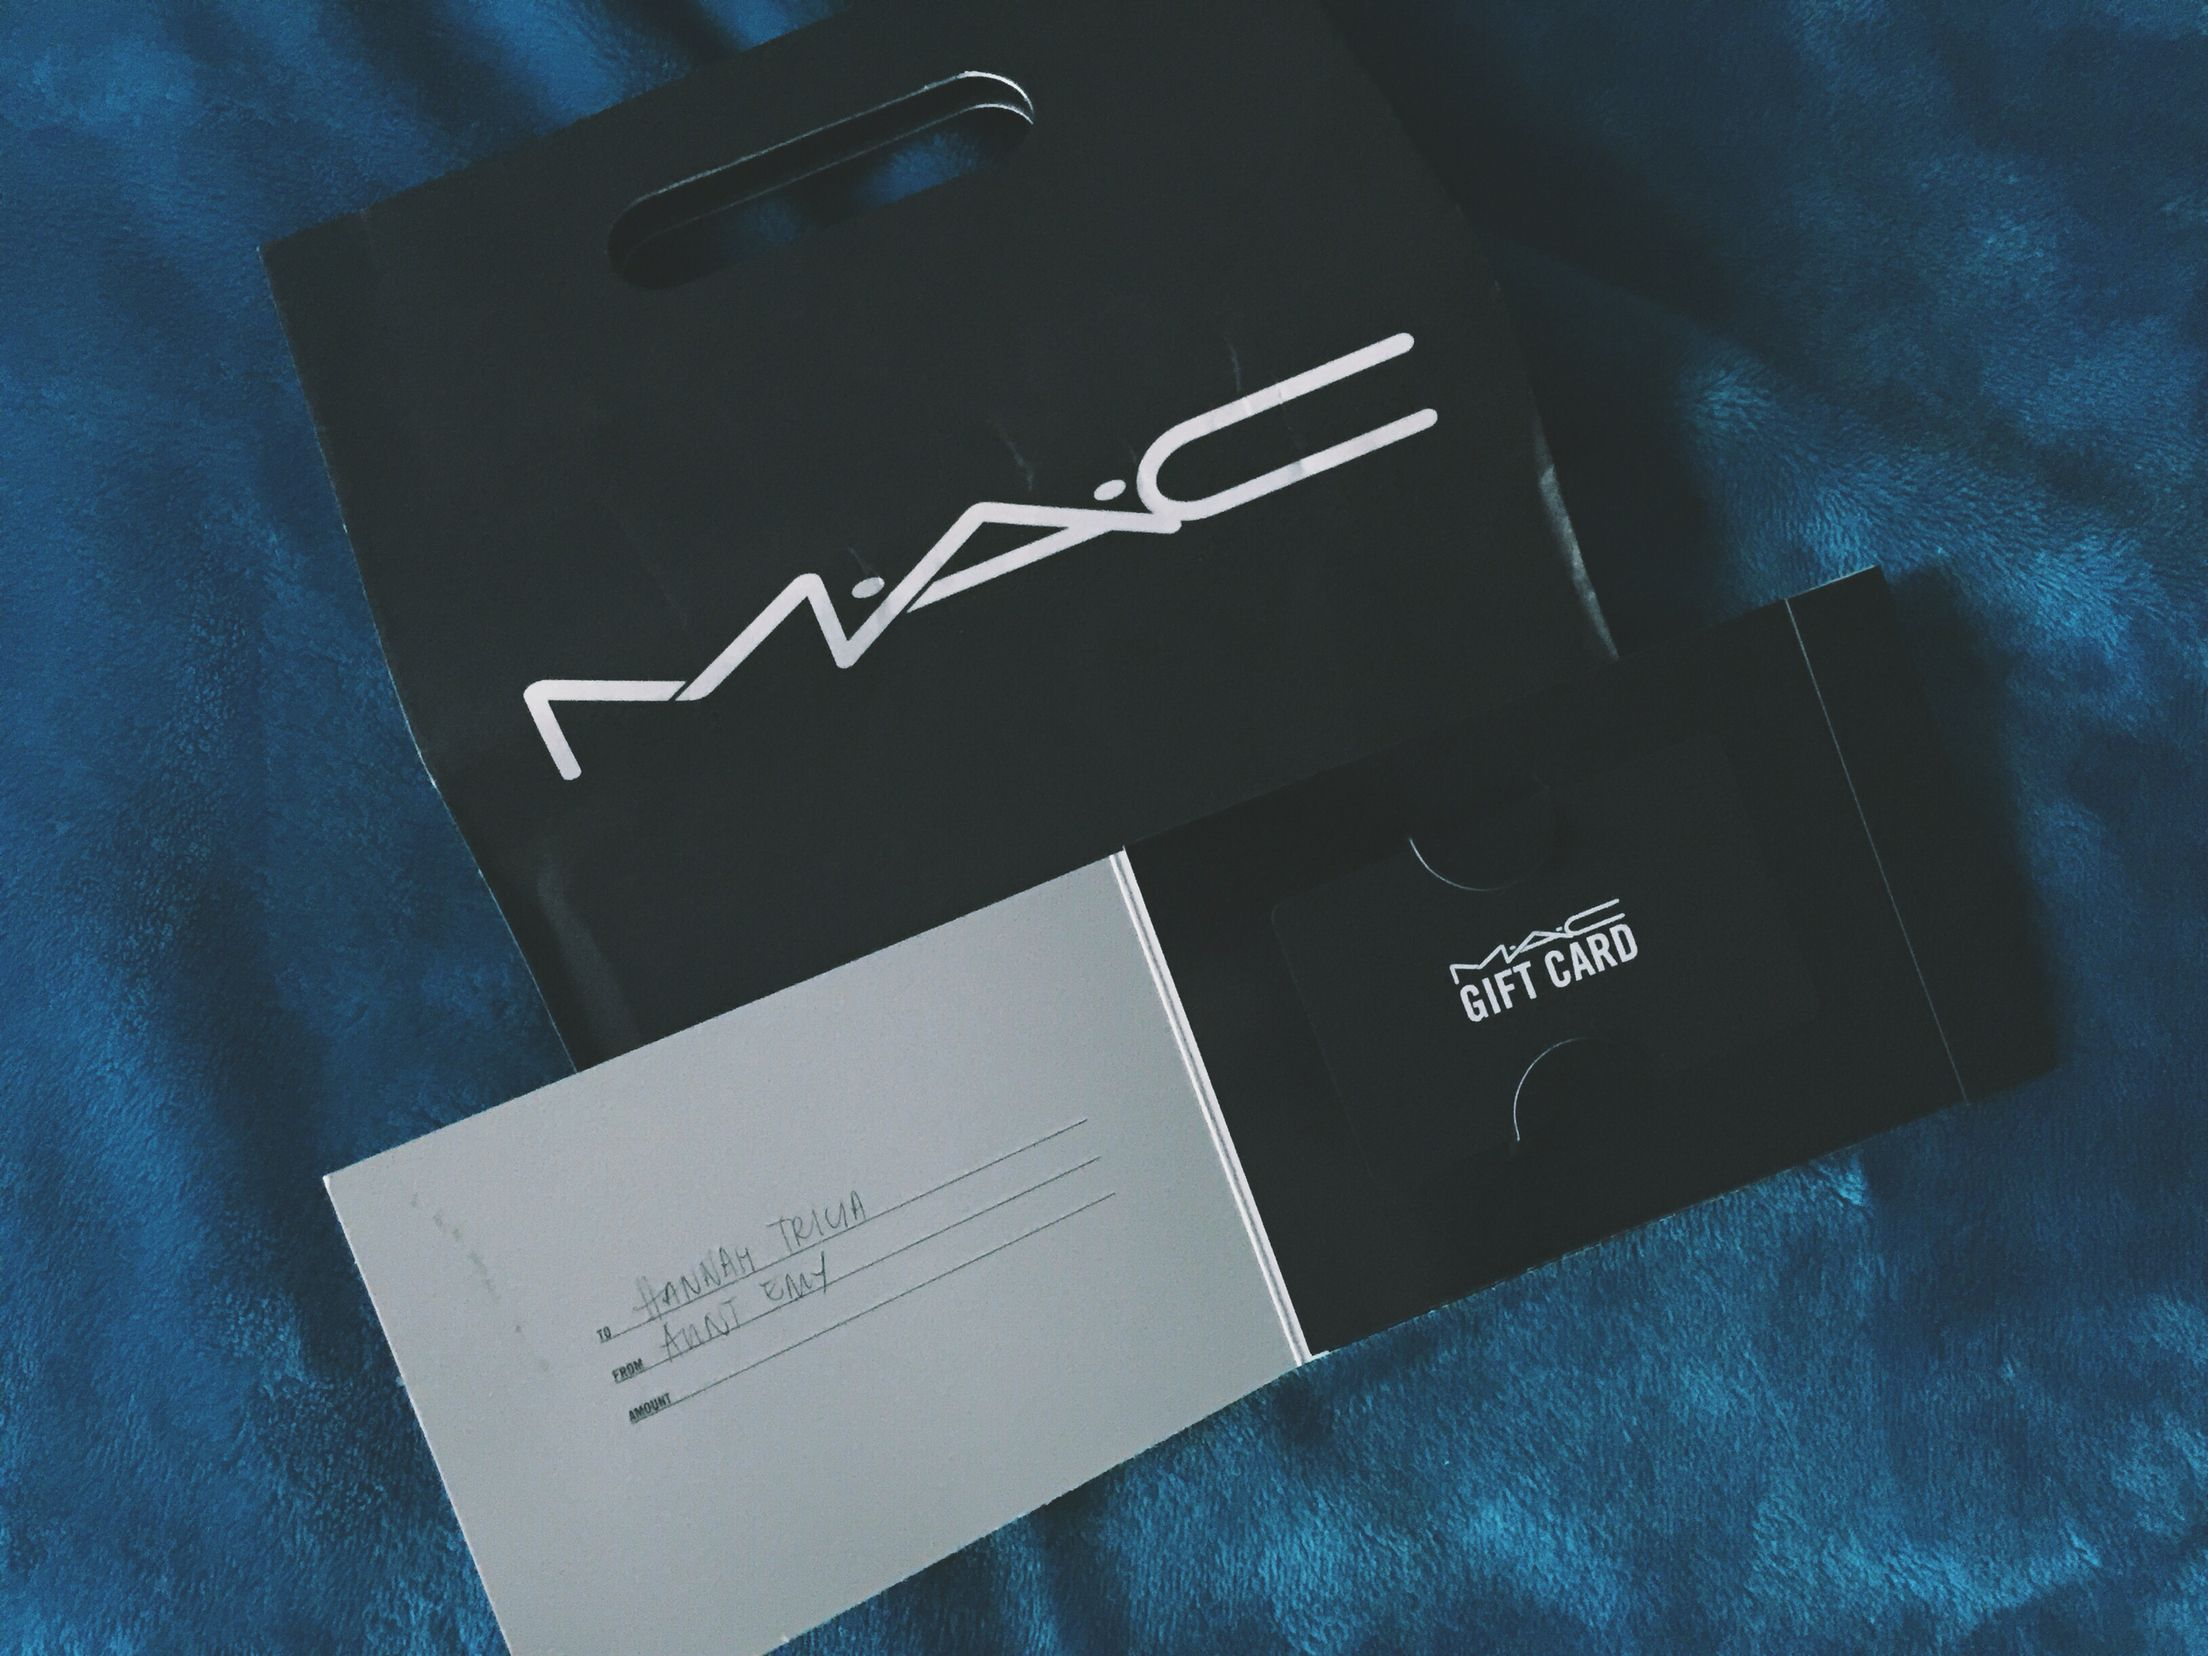 mac gift card gifts pinterest gifts mac gifts and hannukah